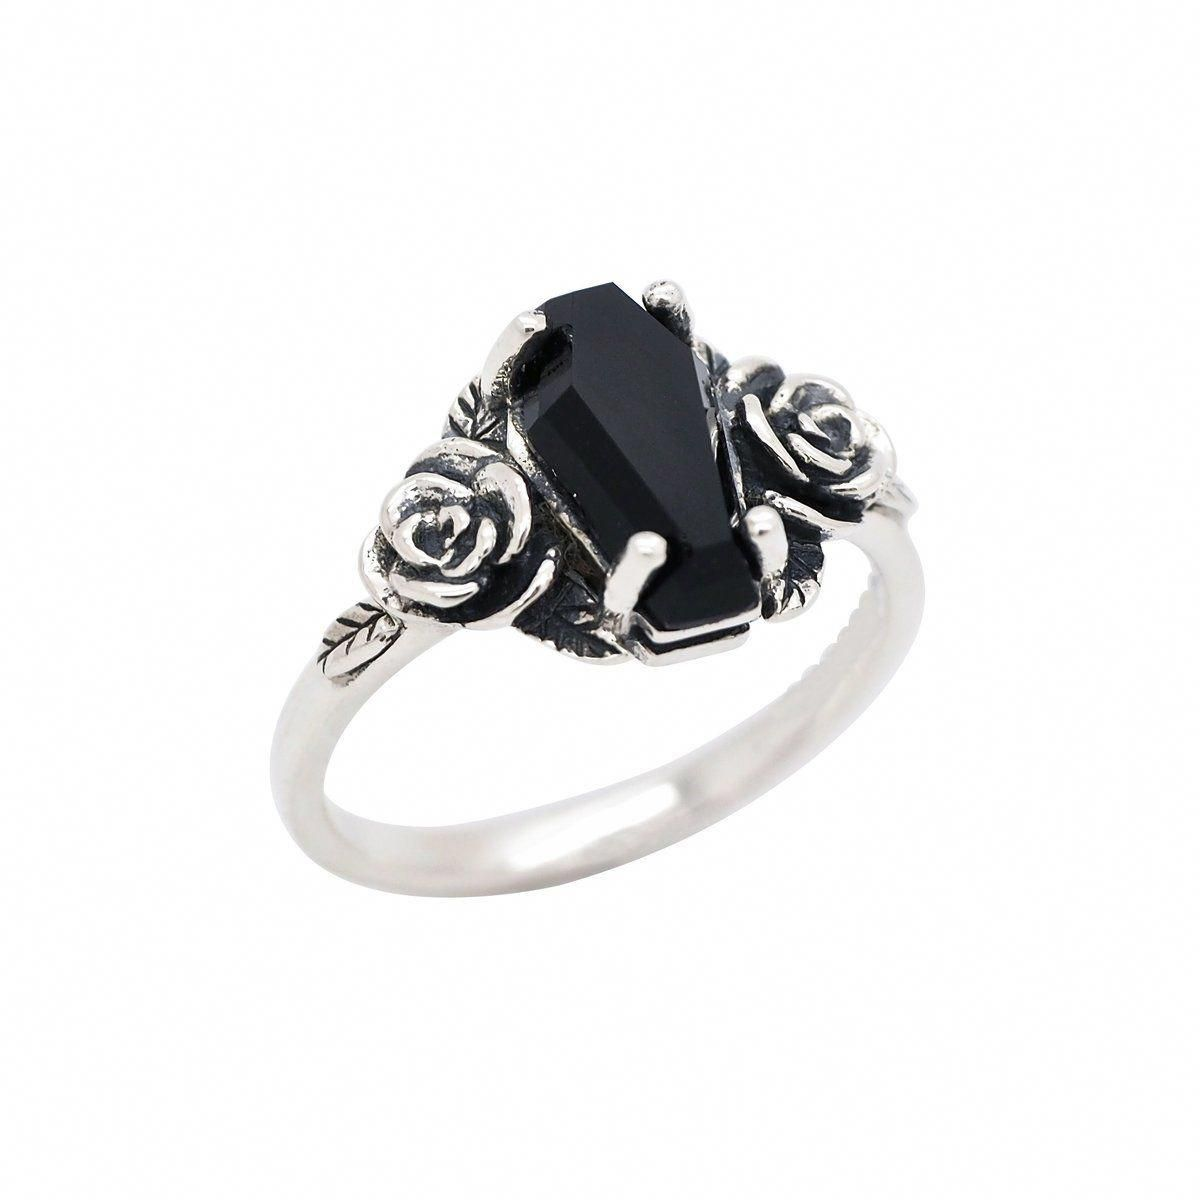 December Birthstone Ring-Unique Christmas Gift Ring Beautiful Natural Black Onyx Ring-Solid 925 Sterling Silver Black Ring-Handmade Jewelry